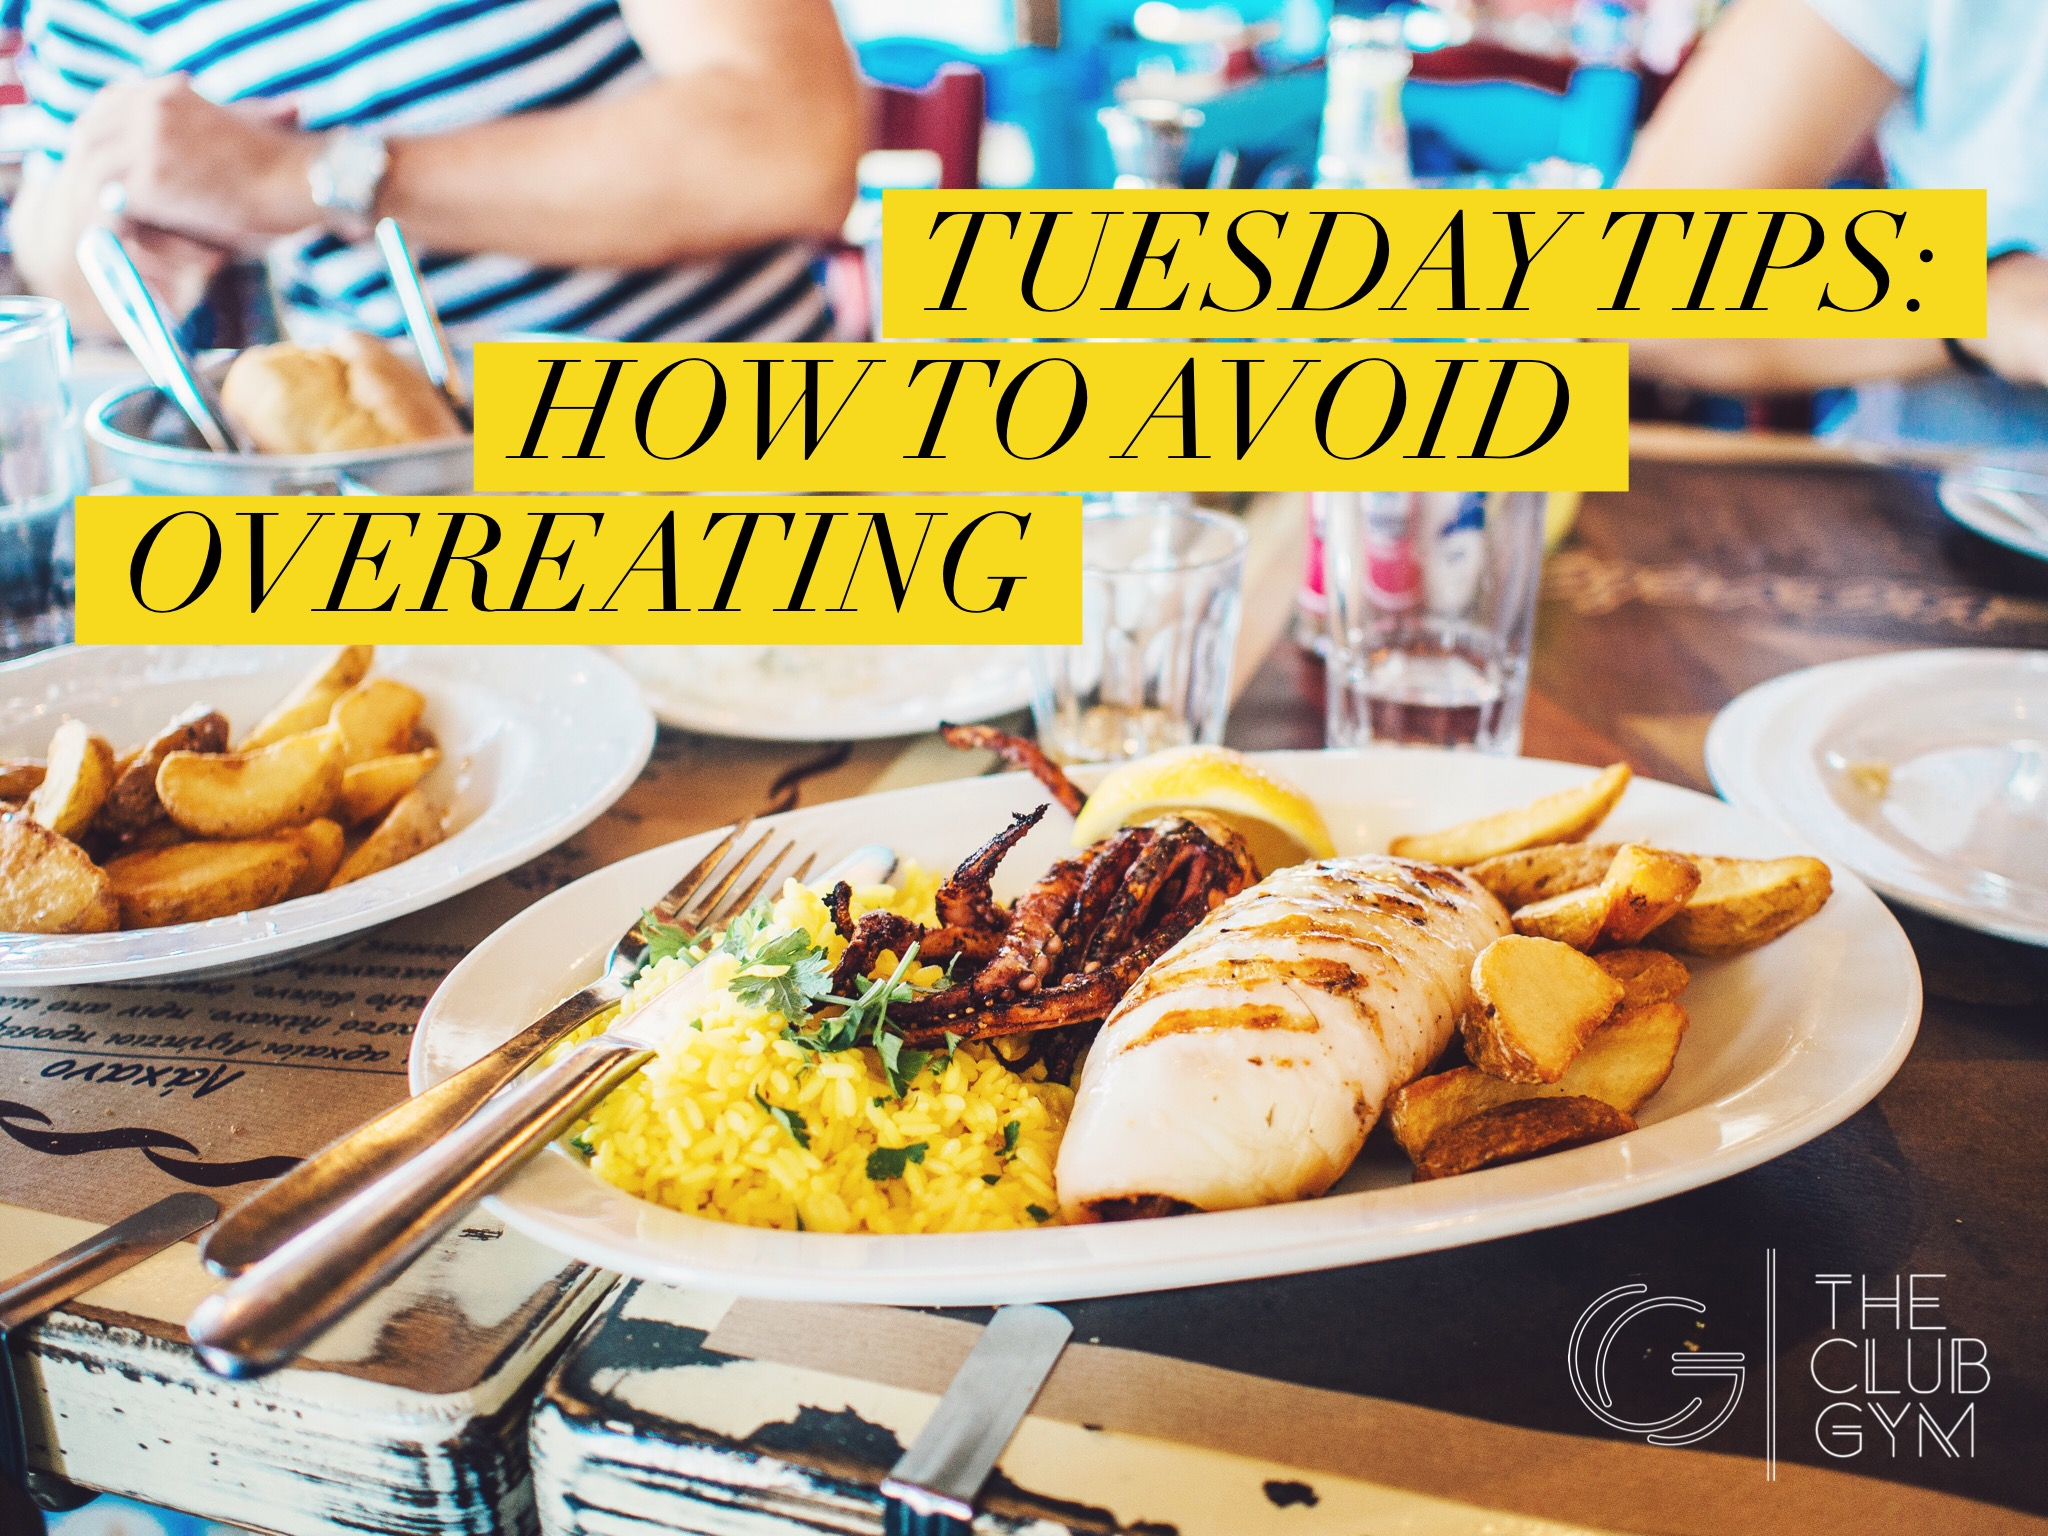 Tuesday Tips - How to avoid overeating